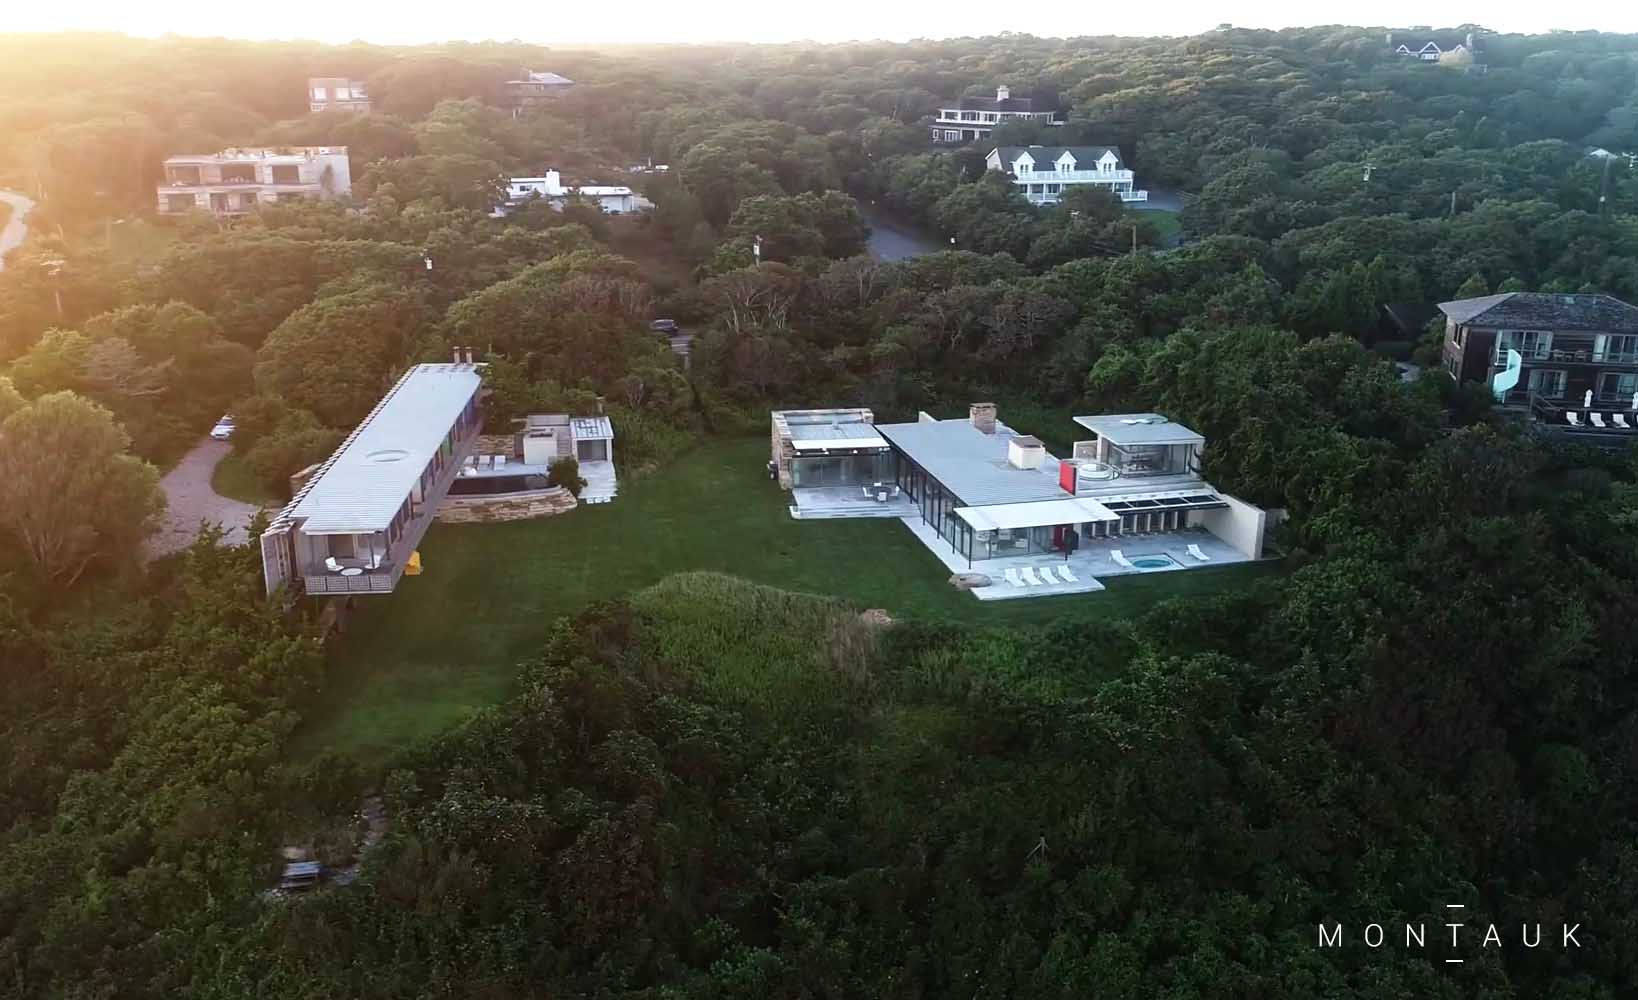 https://theportalagency.com/project/30-old-montauk/